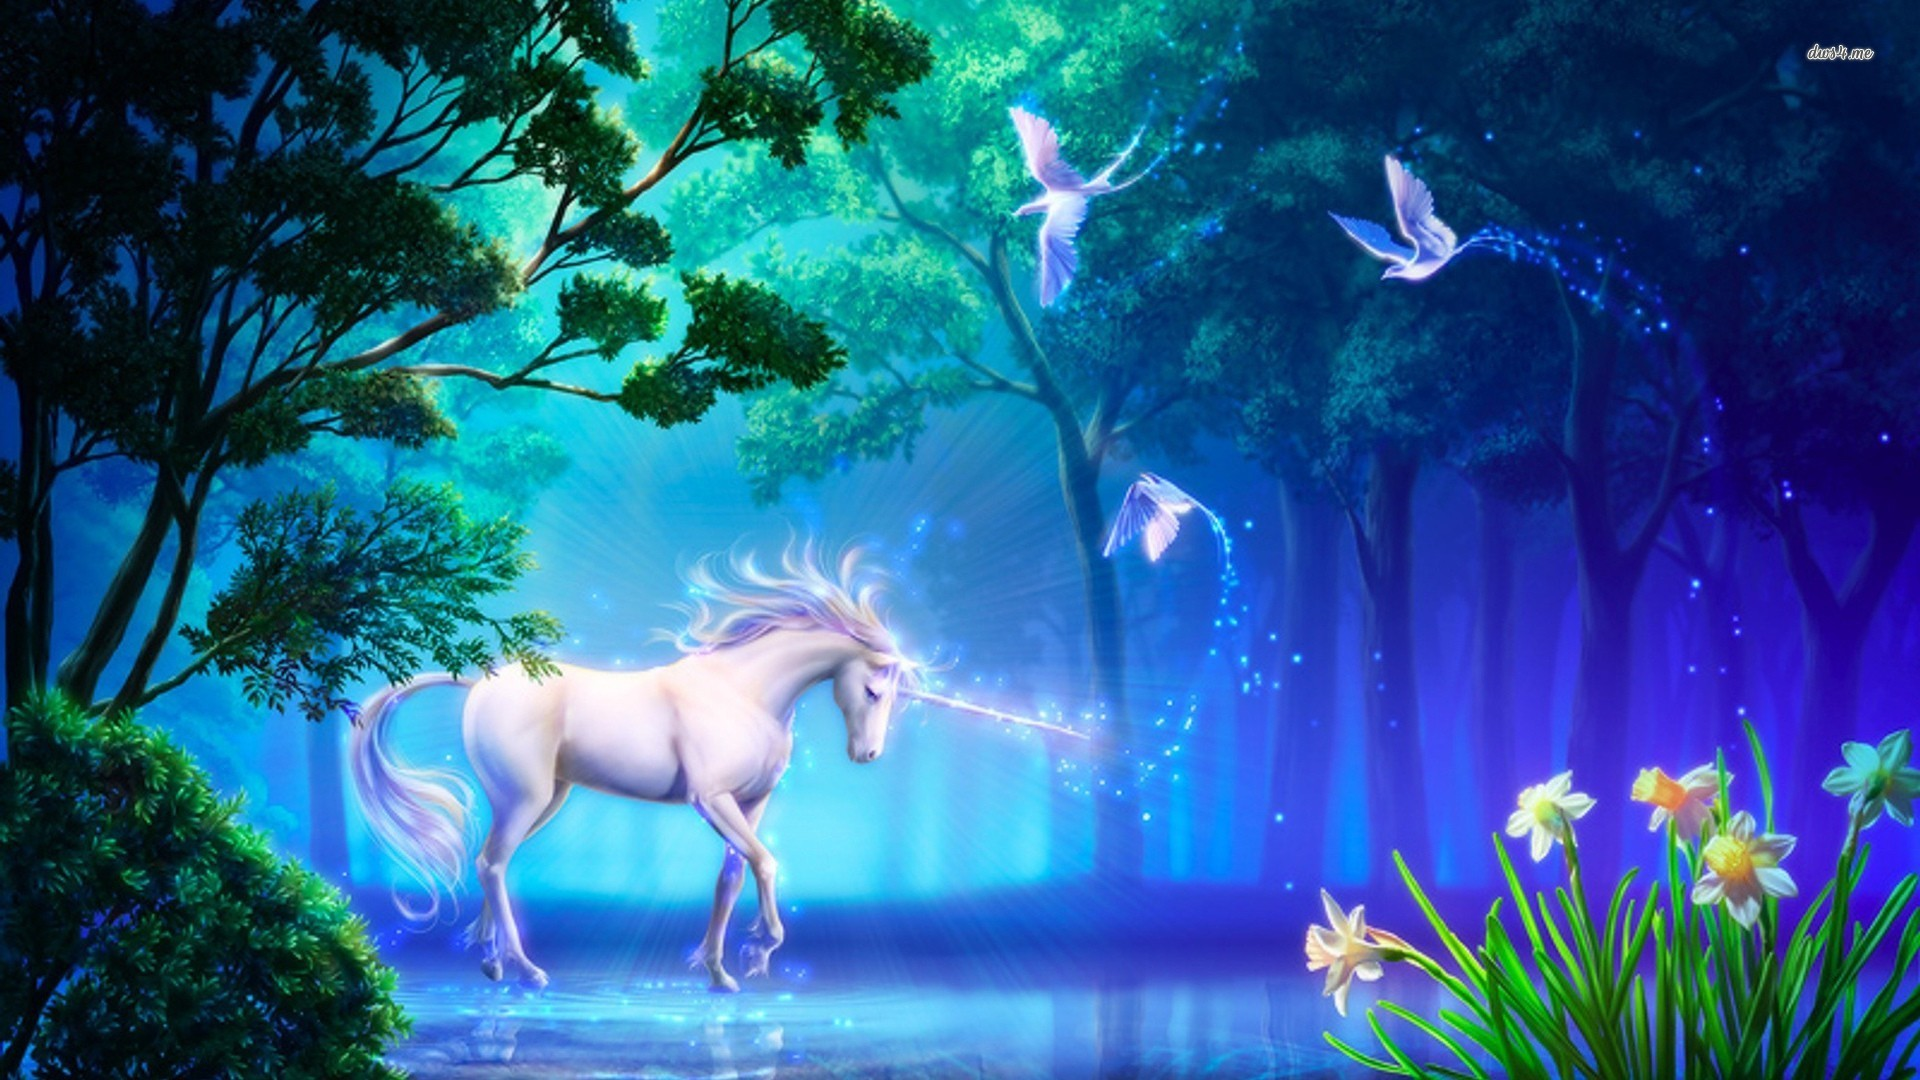 Must see   Wallpaper Horse Forest - Unicorn-Fantasy-In-The-Forest  HD_52151.jpg